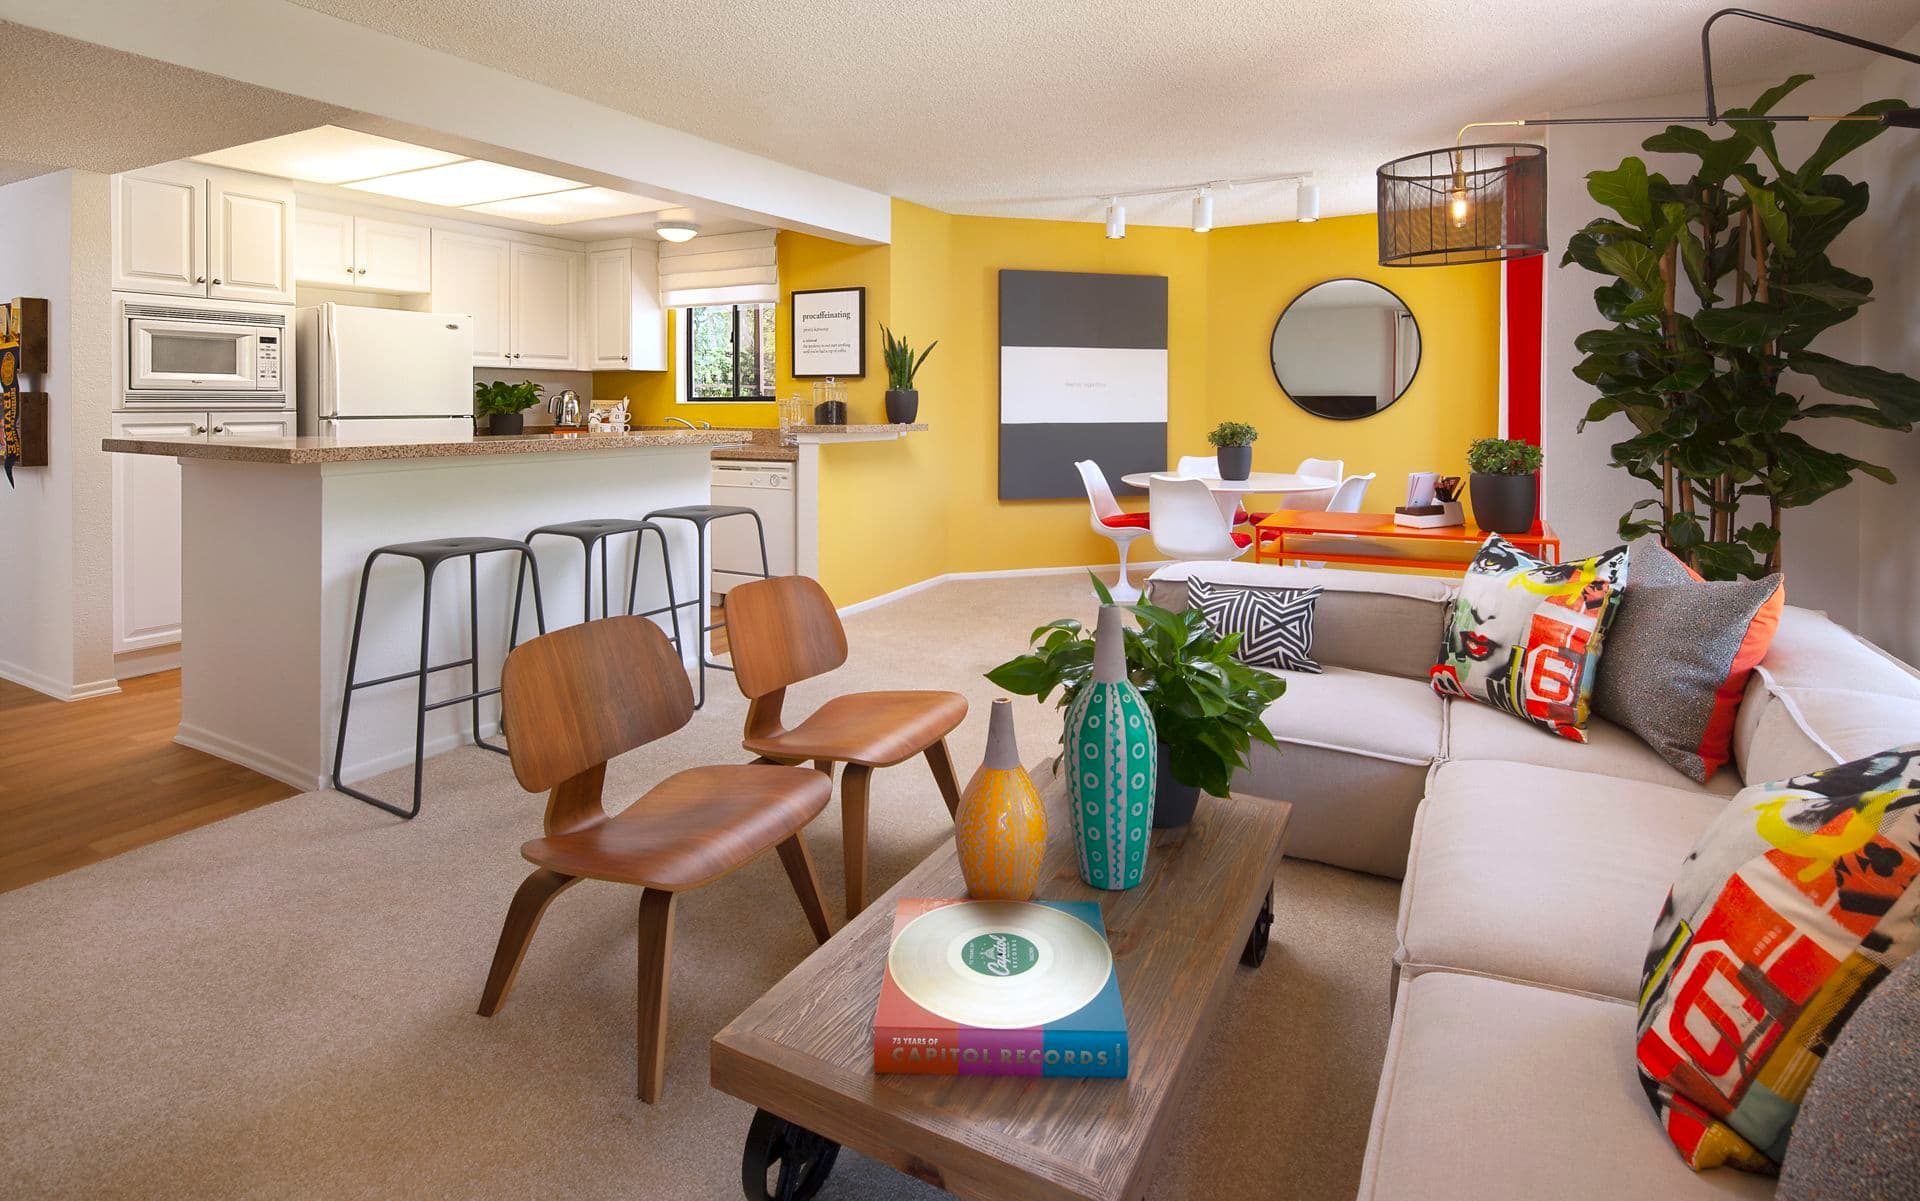 Interior view of living area Dartmouth Court Apartment Homes at University Town Center in Irvine, CA.